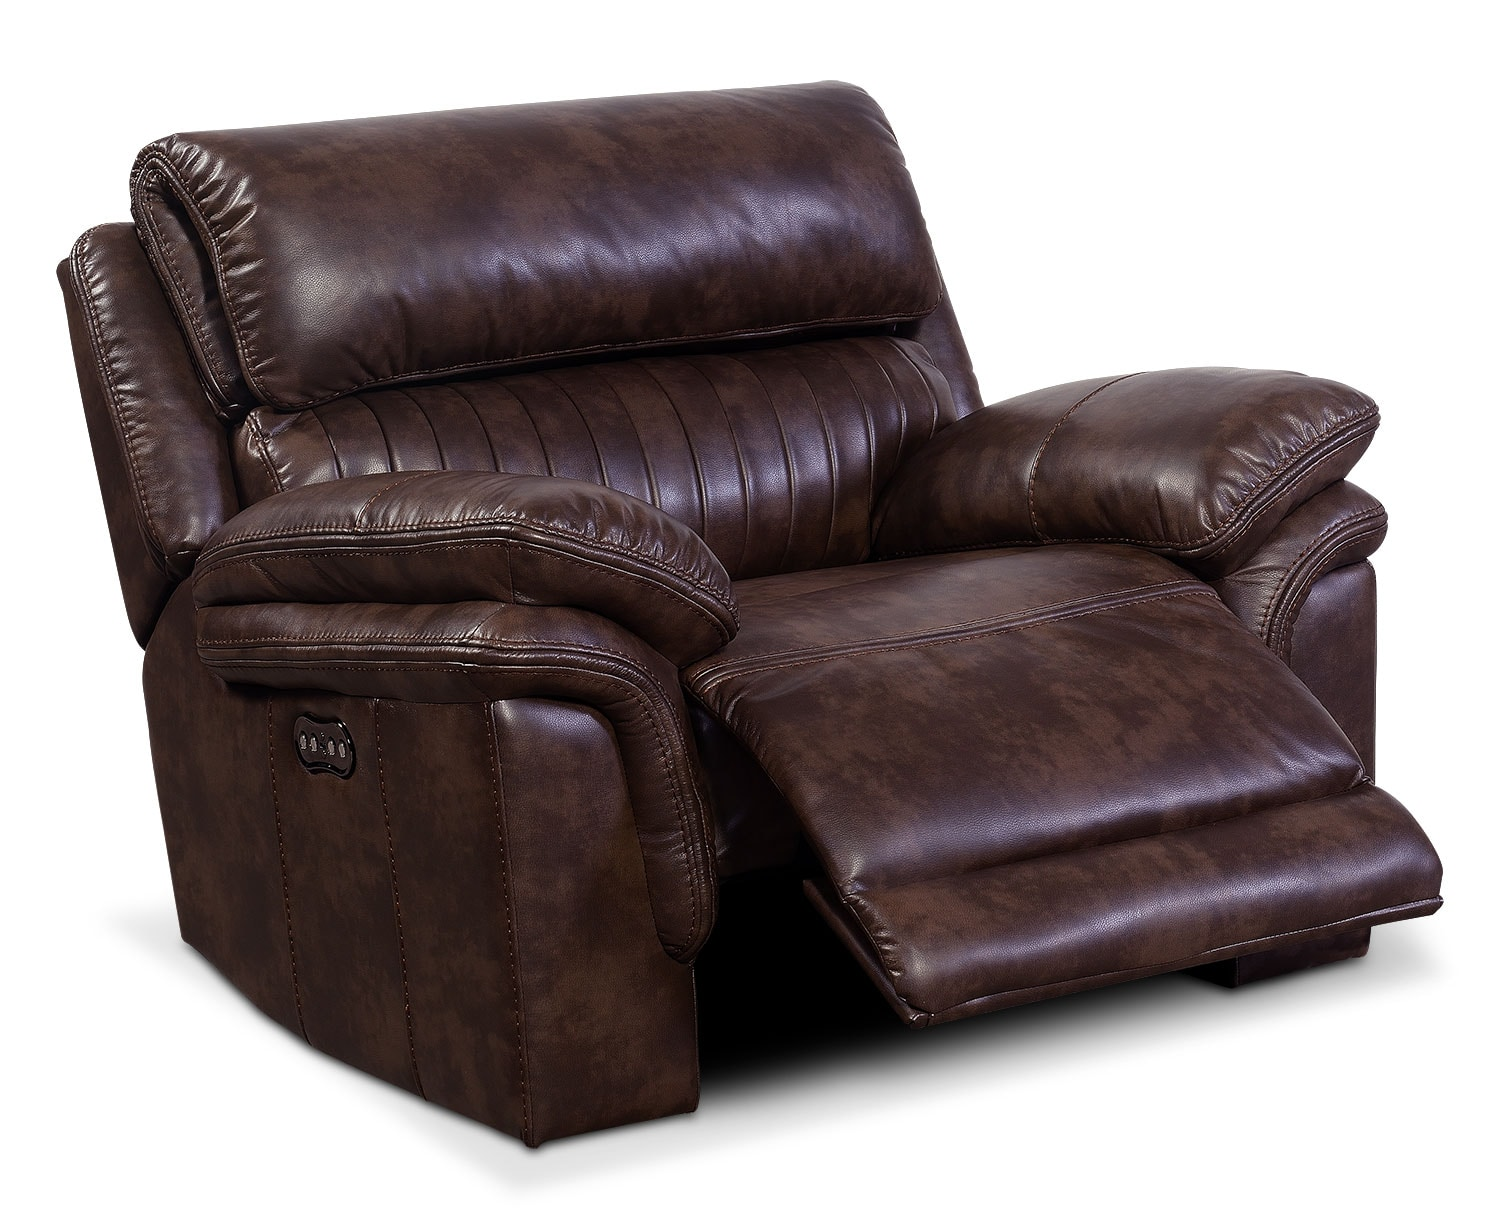 Monterey Power Recliner - Chocolate by One80  sc 1 st  American Signature Furniture & Monterey Power Recliner - Chocolate   American Signature Furniture islam-shia.org